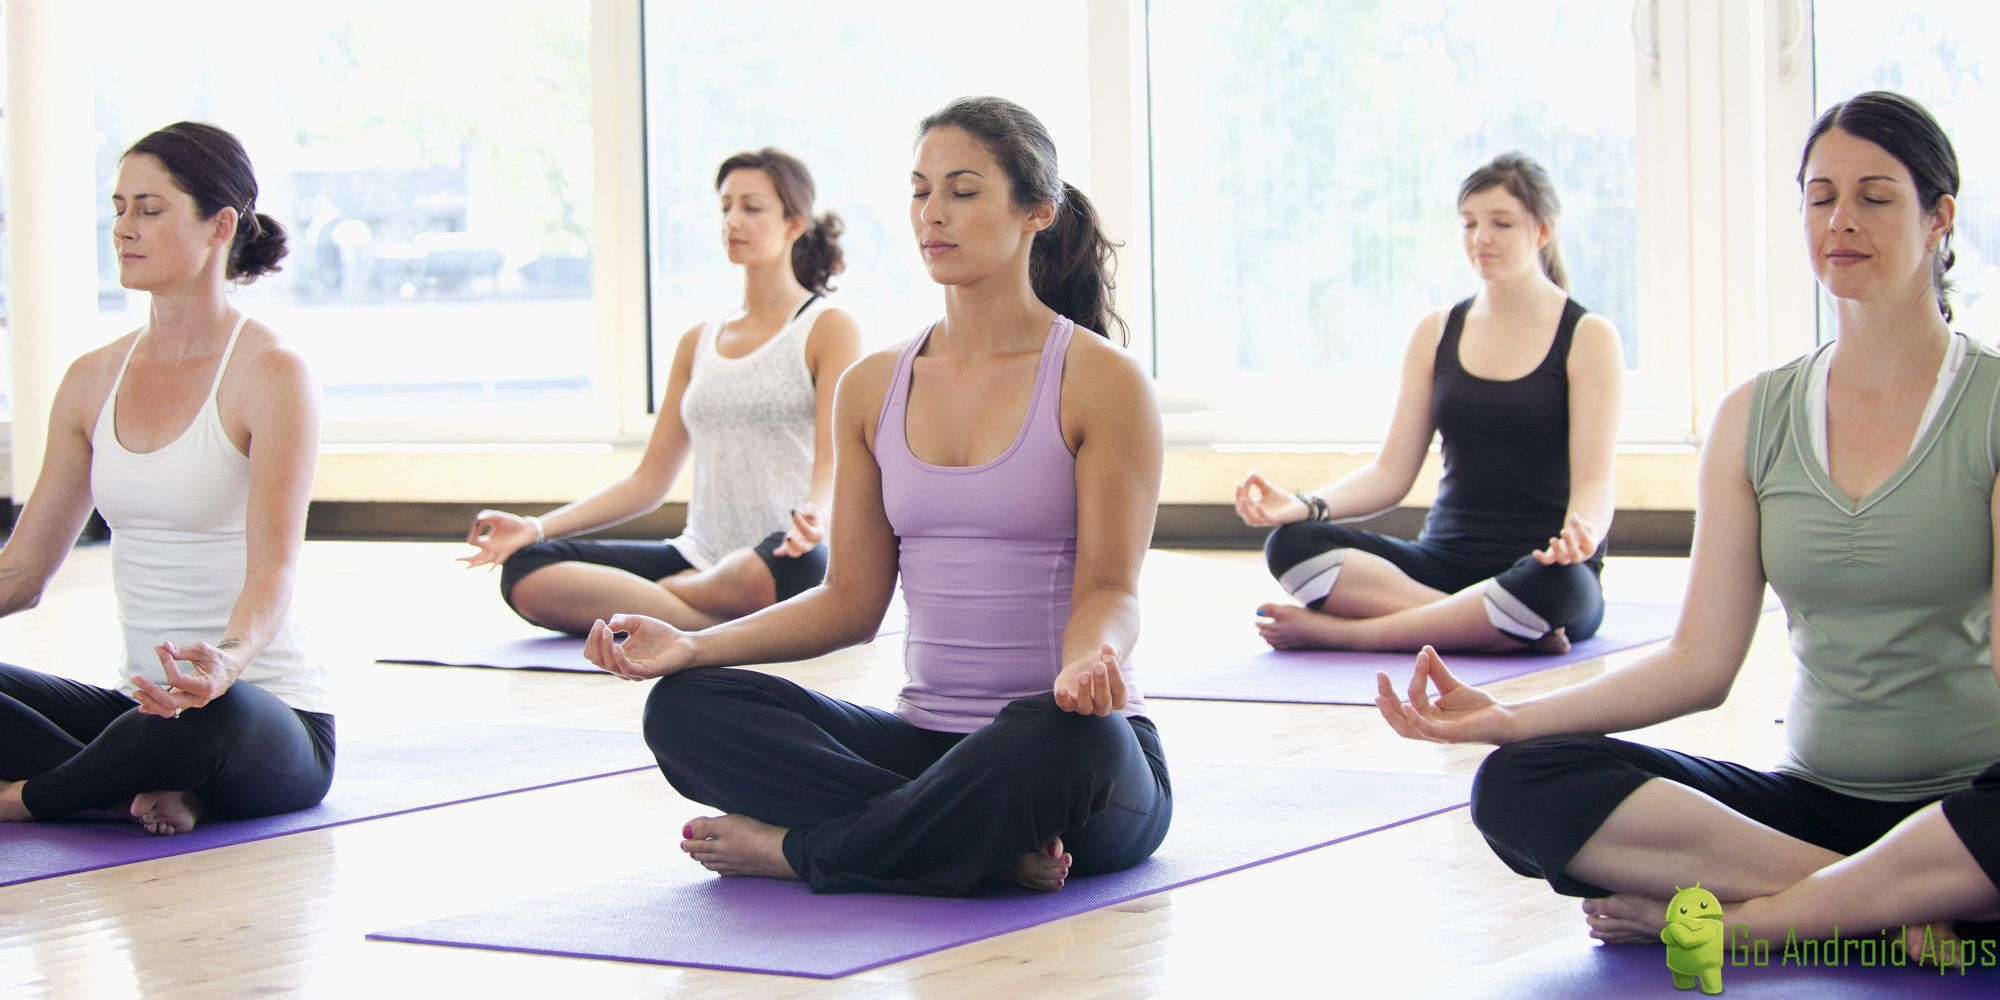 Top 5 Best Yoga Apps of Android